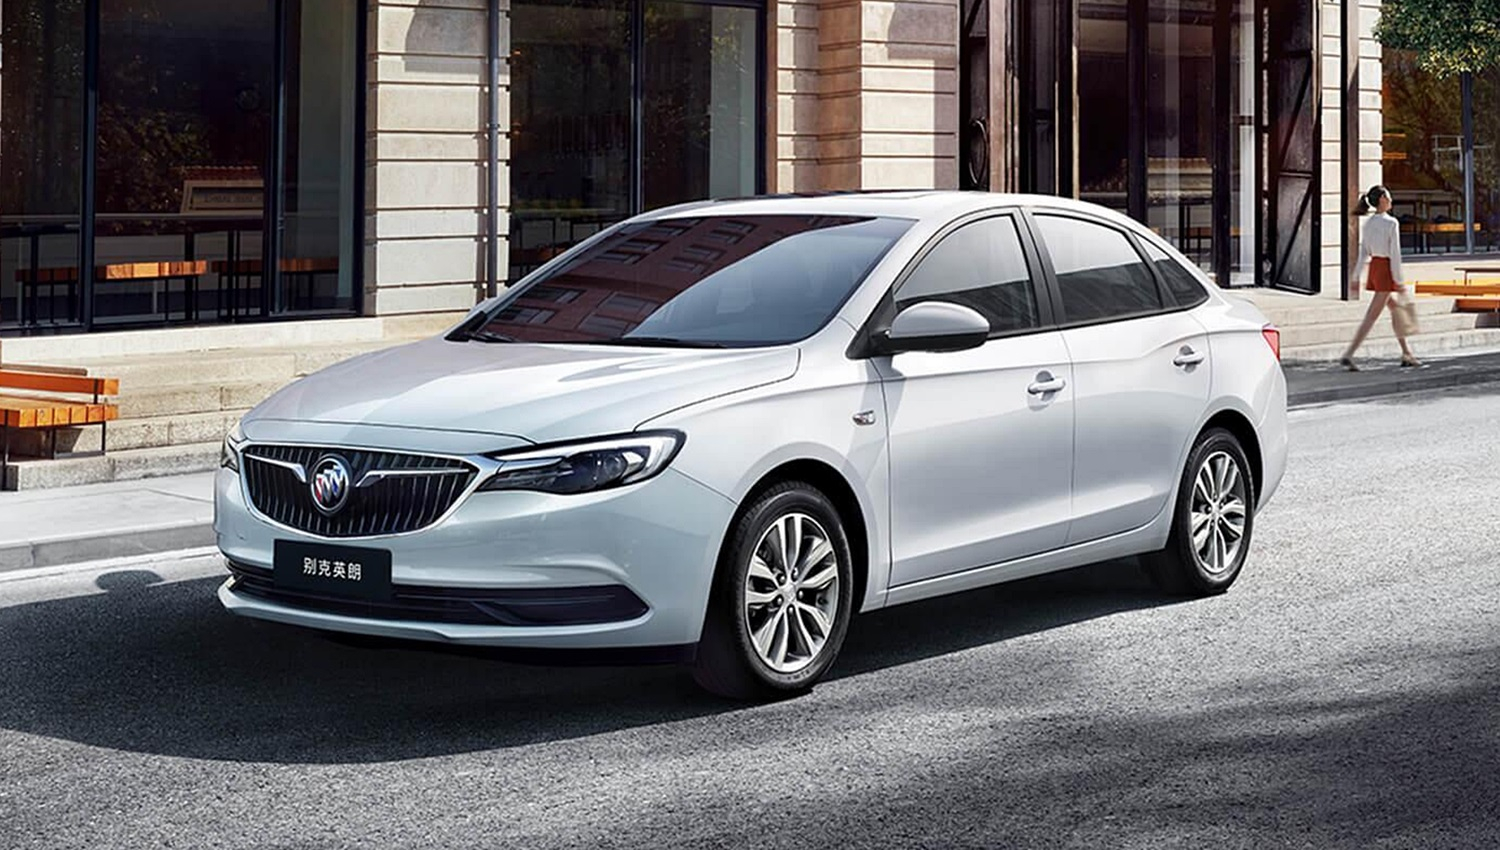 New 2021 Buick Excelle Gt Mild Hybrid Revealed | Gm Authority New 2021 Buick Riviera Specs, Diesel, Lights